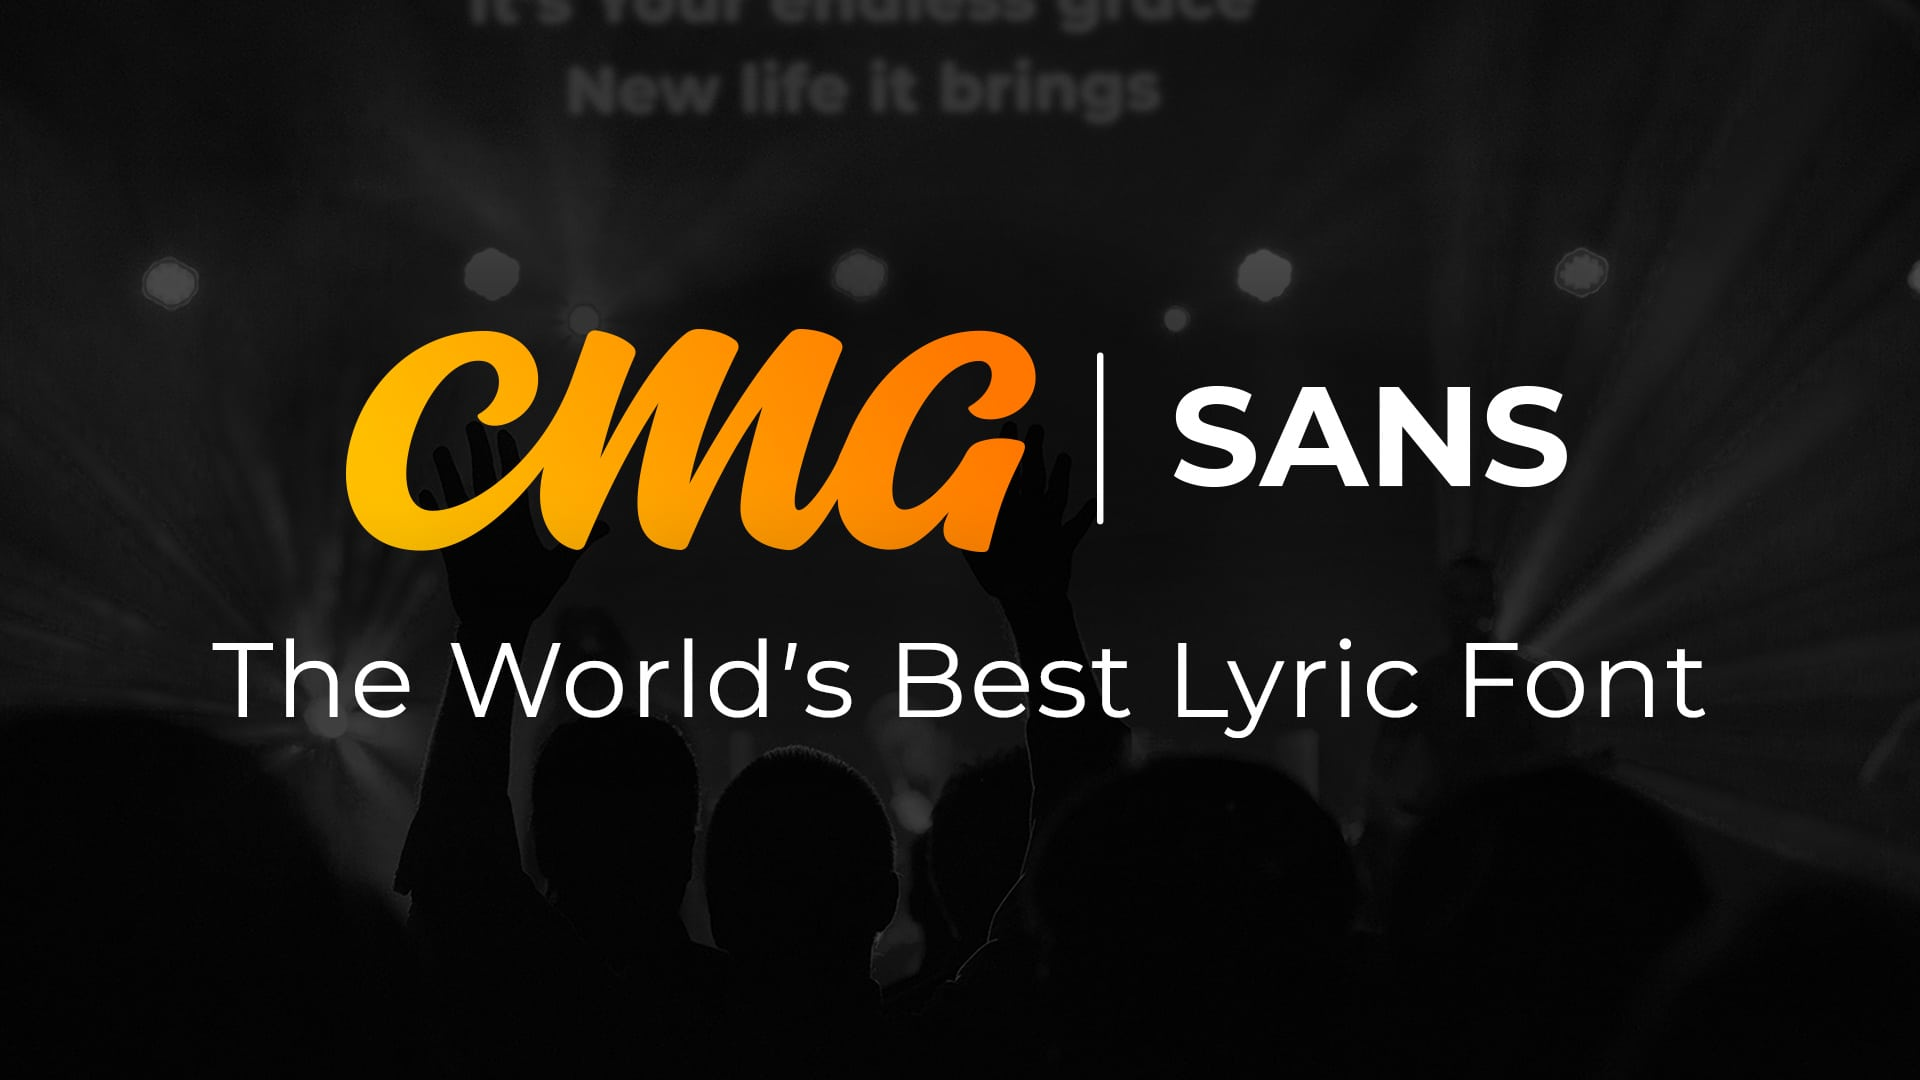 CMG Sans The World's Best Lyric Font